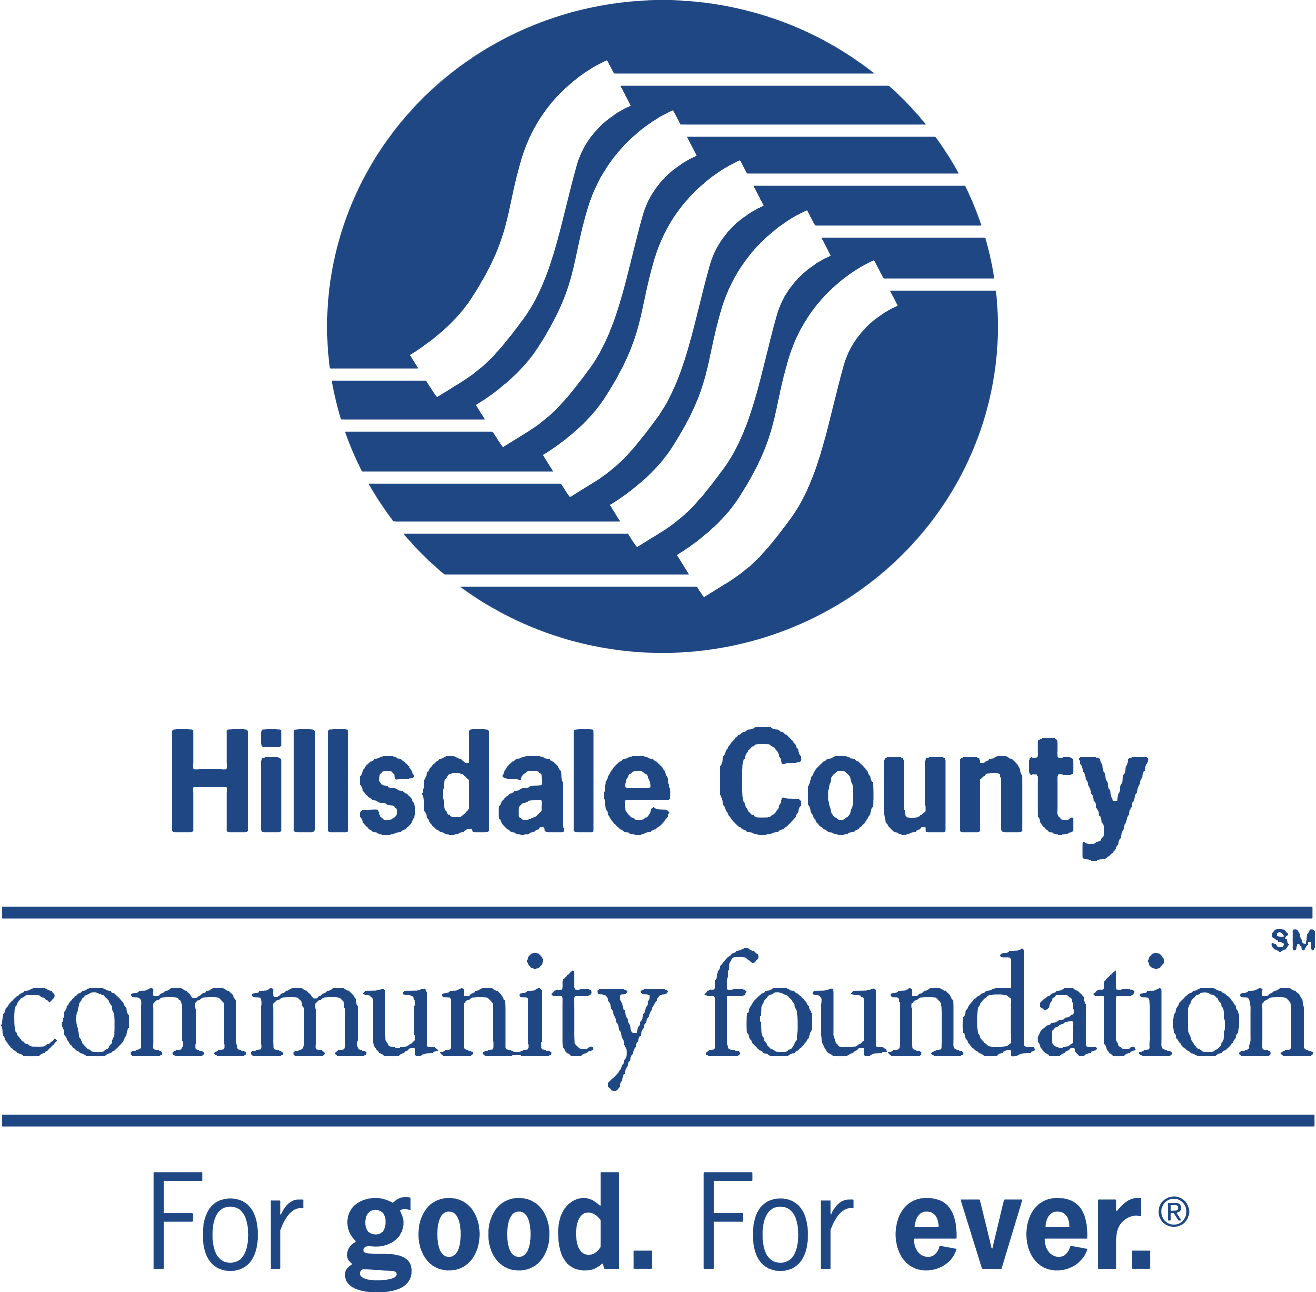 Hillsdale County Community Foundation